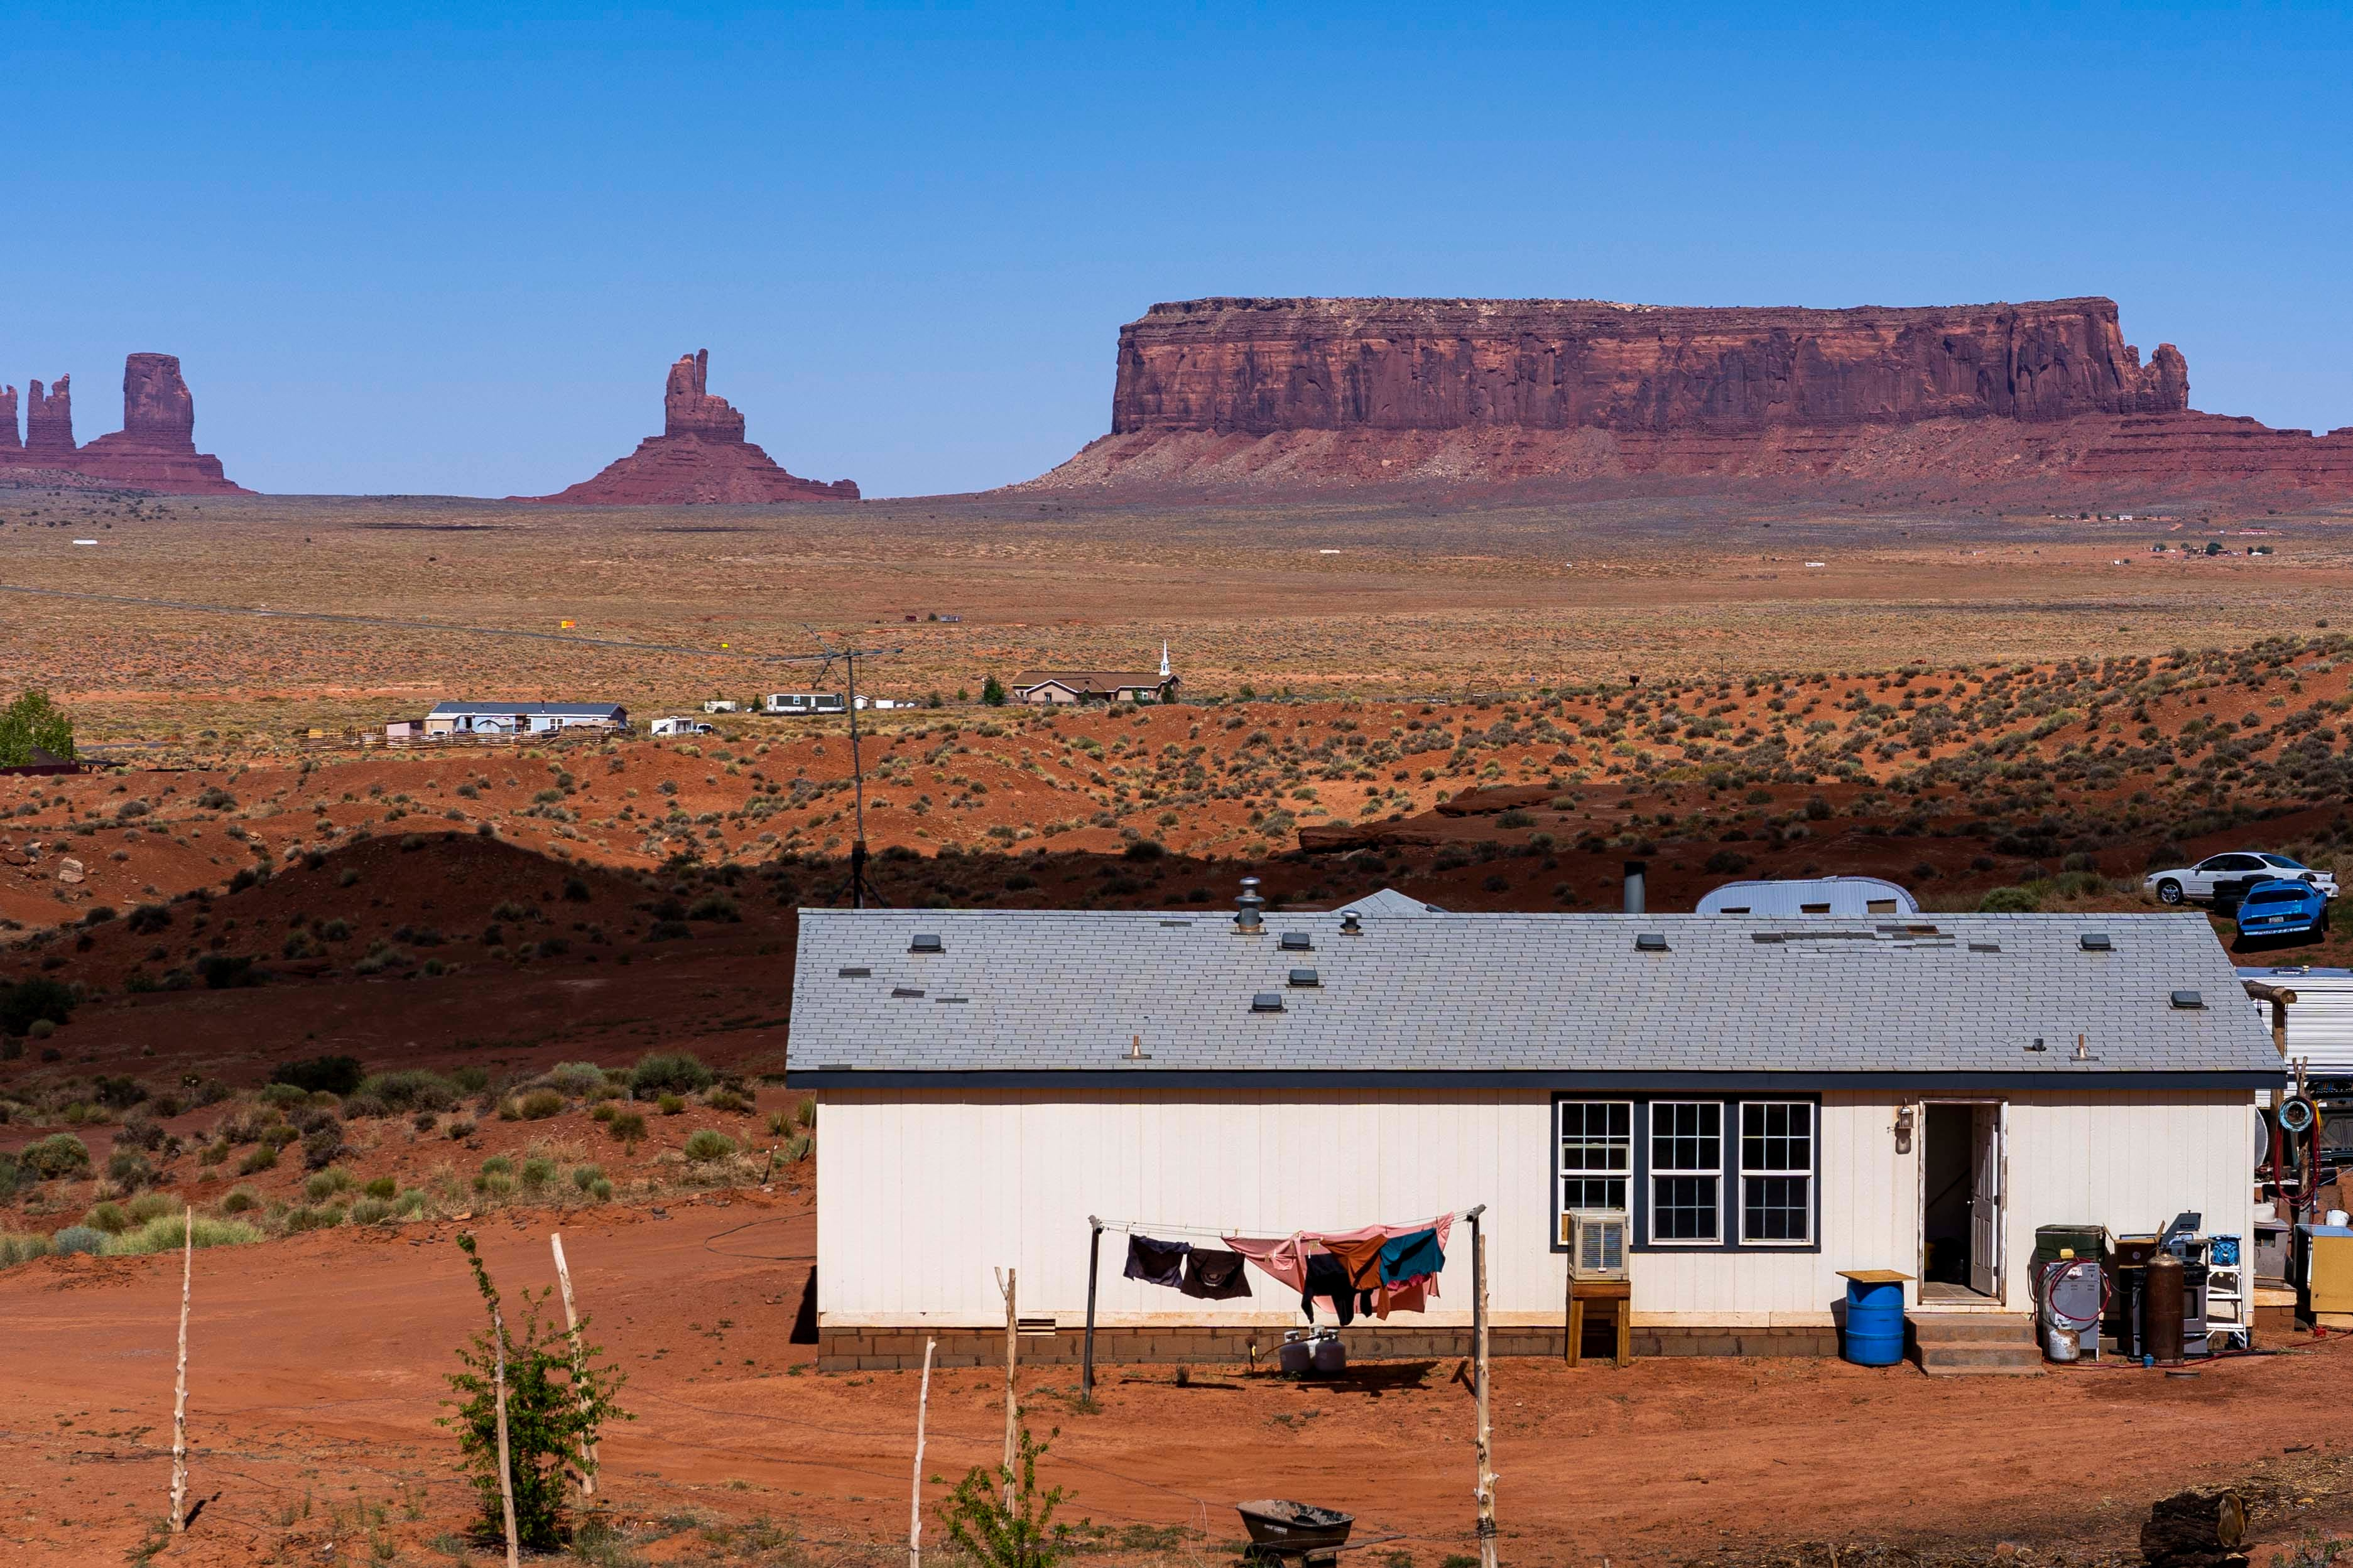 Residents dry their clothes outside a home in Monument Valley, Utah. An estimated 30% percent of people across the Navajo Nation live in homes without running water.